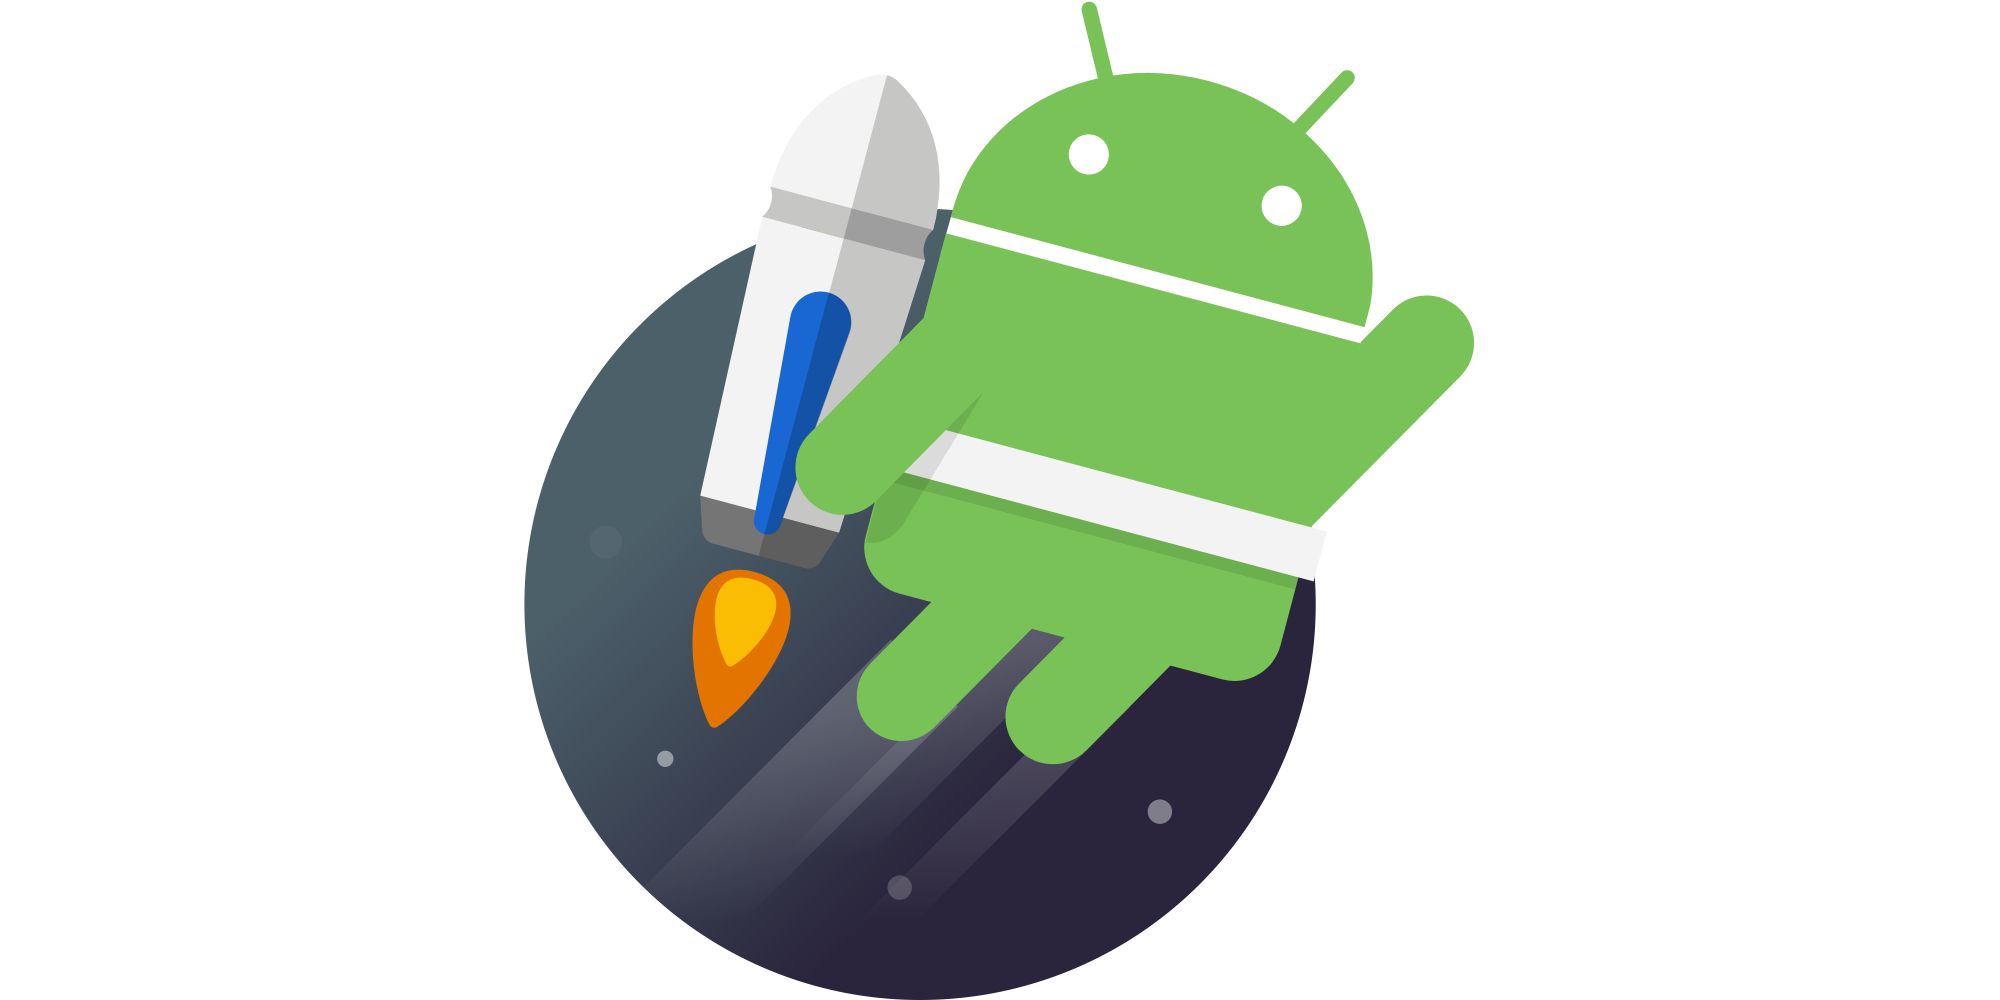 Google adds 10 libraries to Android Jetpack, unveils Kotlin